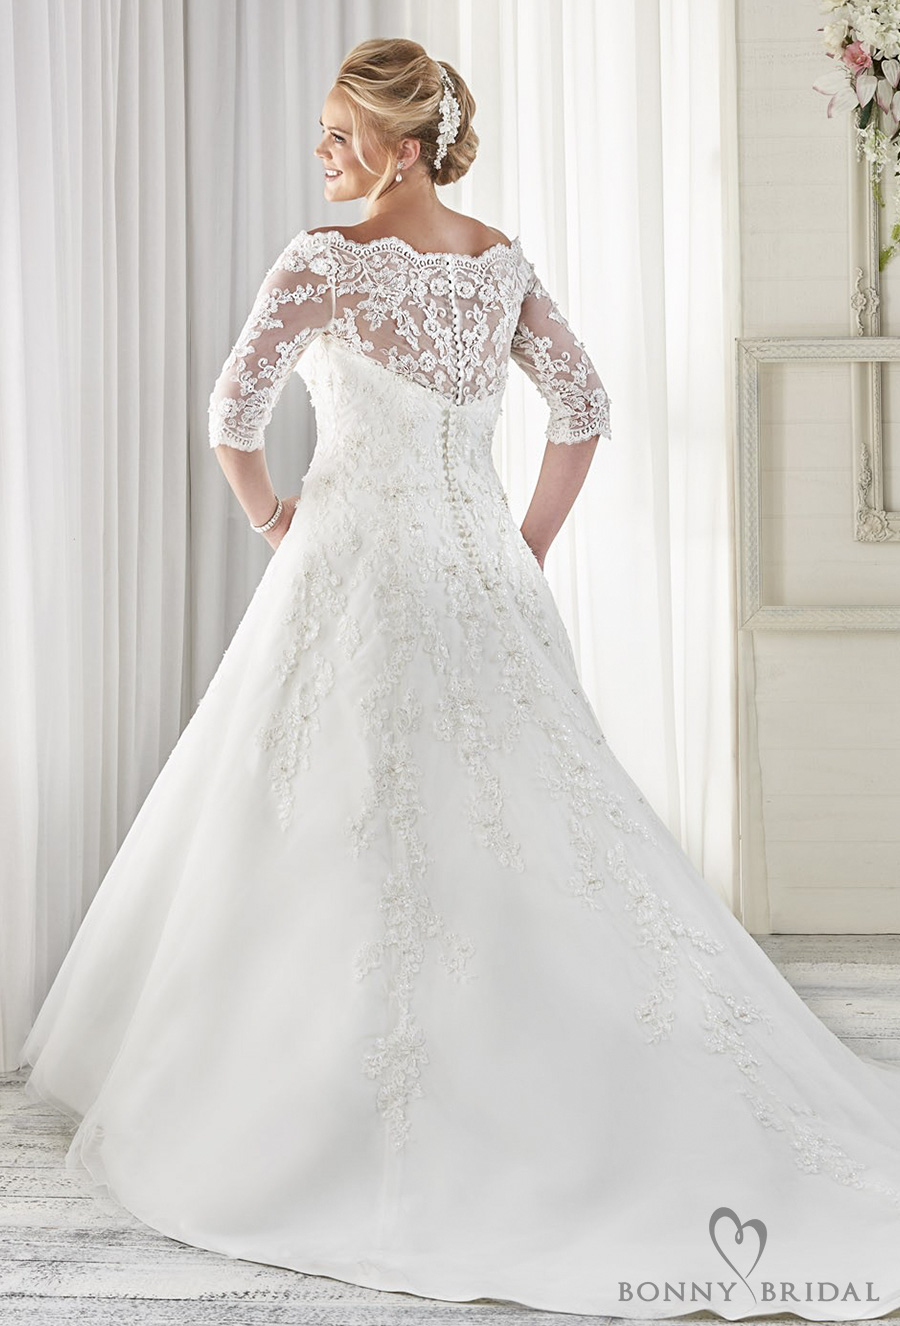 Bonny bridal wedding dresses unforgettable styles for for Plus size wedding dresses with color and sleeves